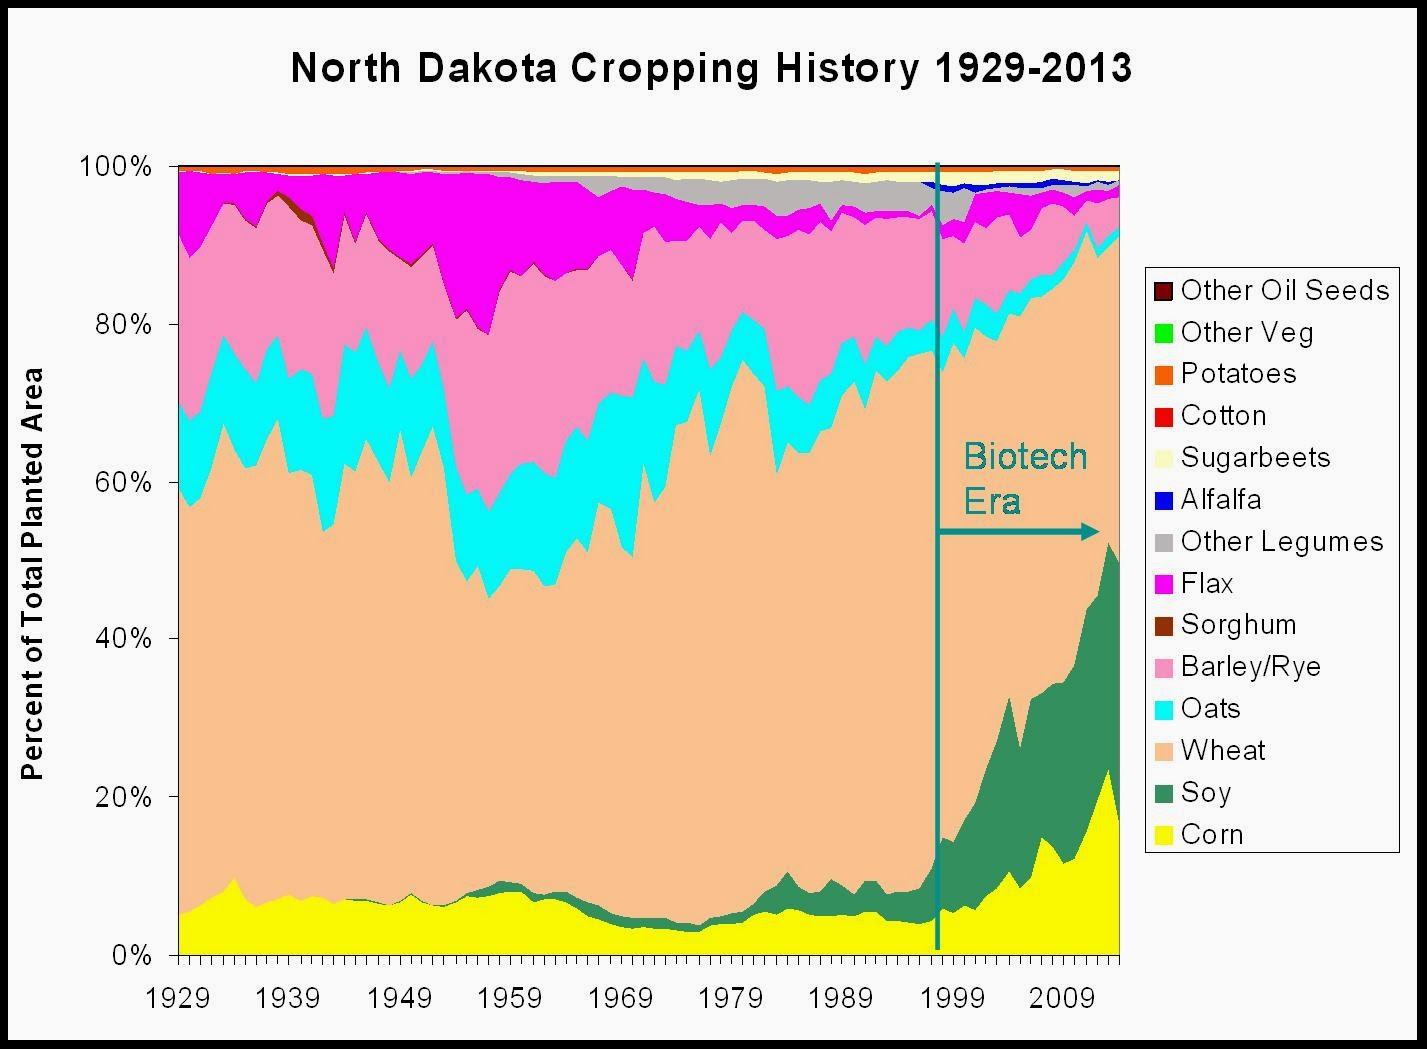 North Dakota crop history